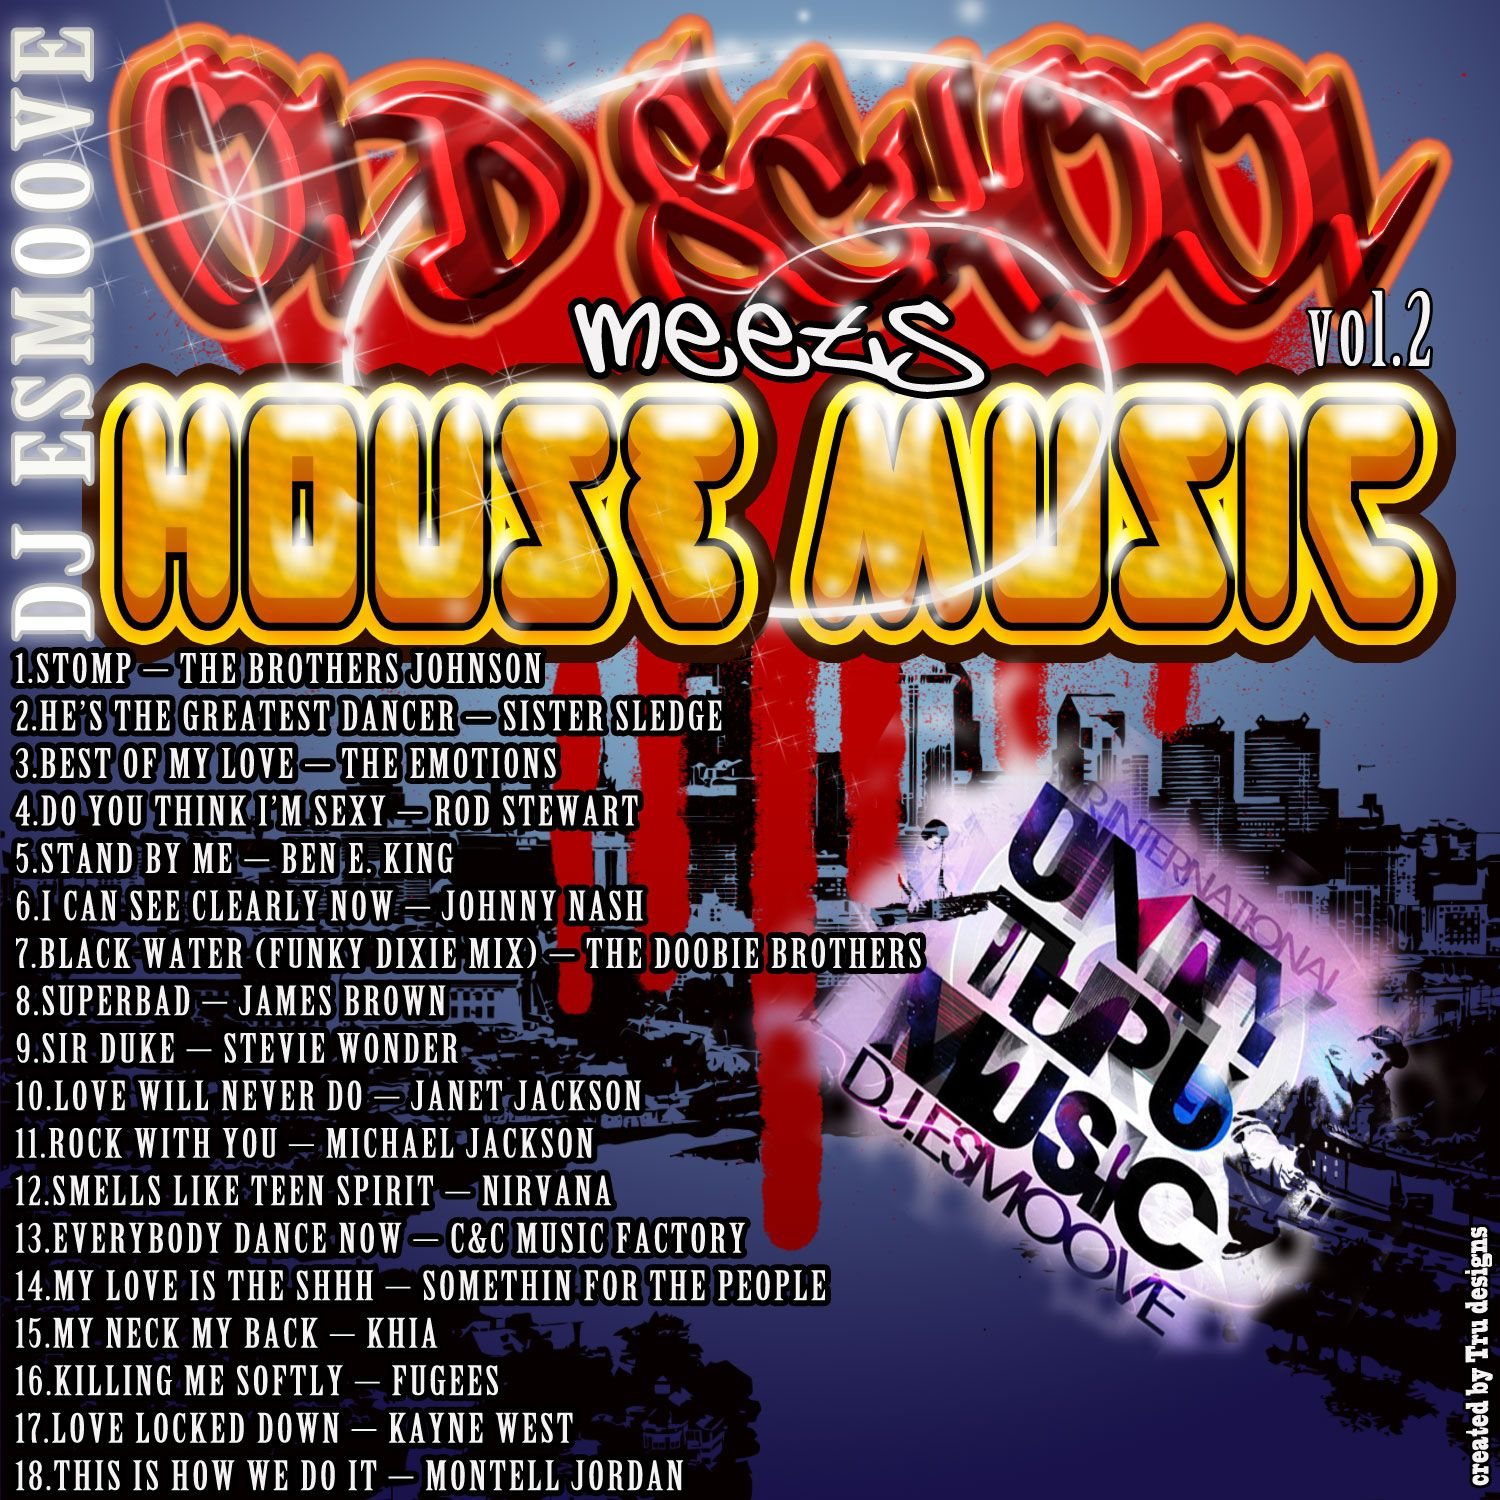 Dj E Smoove Old School Meets House Music Vol Ii Ft